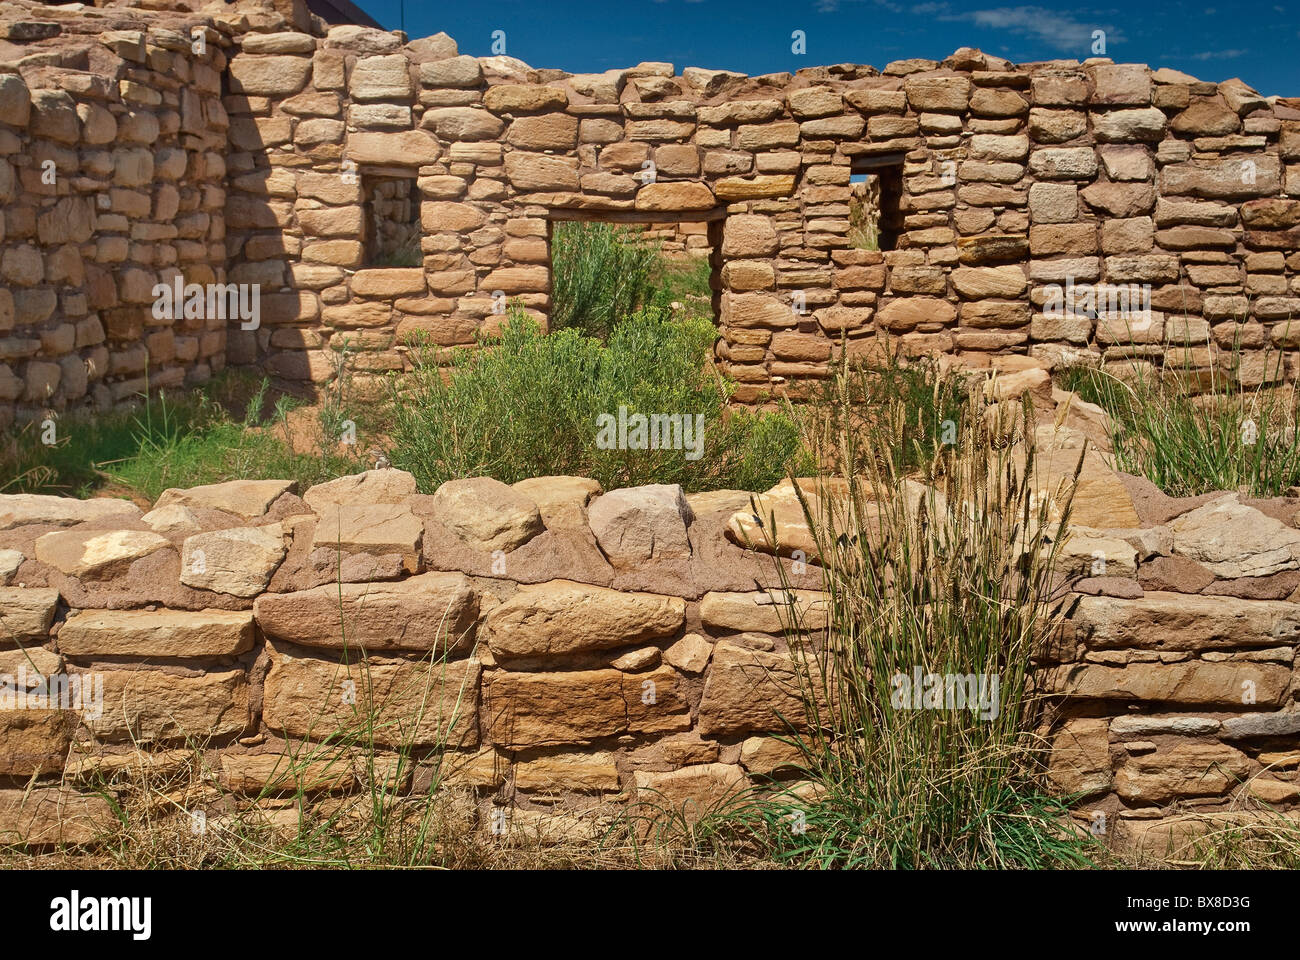 Lowry Pueblo, Anasazi ruins at Canyons of the Ancients National Monument, Colorado, USA - Stock Image